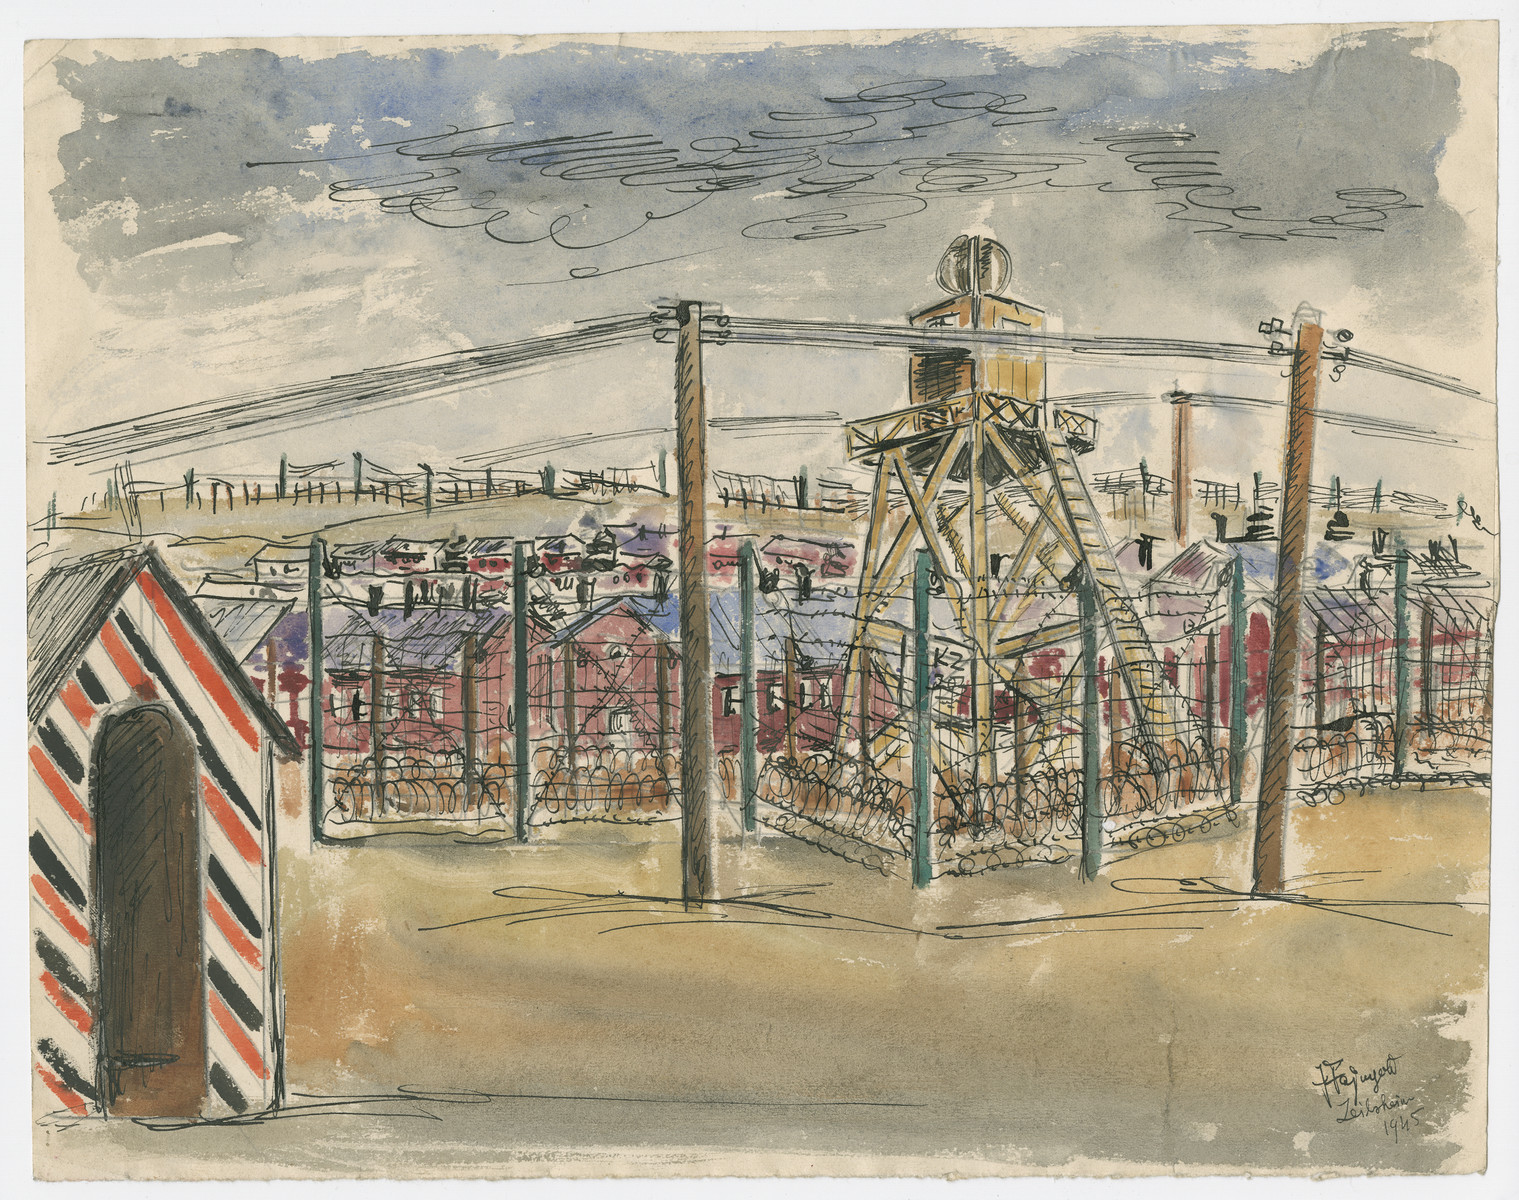 Watercolor by Julian Feingold of an unidentified concentration camp.